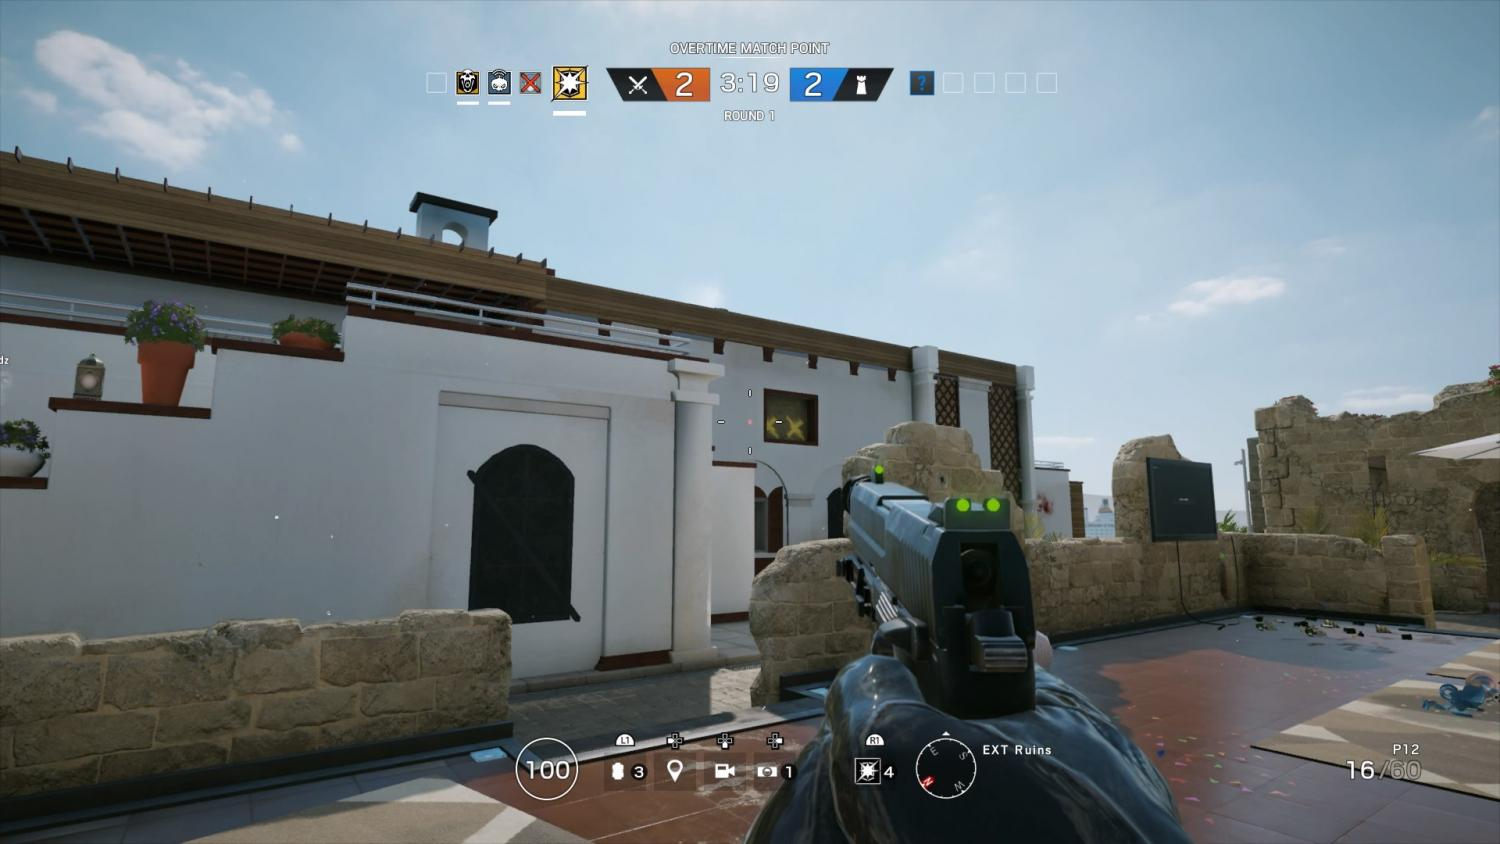 Coastline, one of the game's better looking maps. Attackers begin on the outside of a building while defenders are always inside. Photo credit: Ulises Duenas